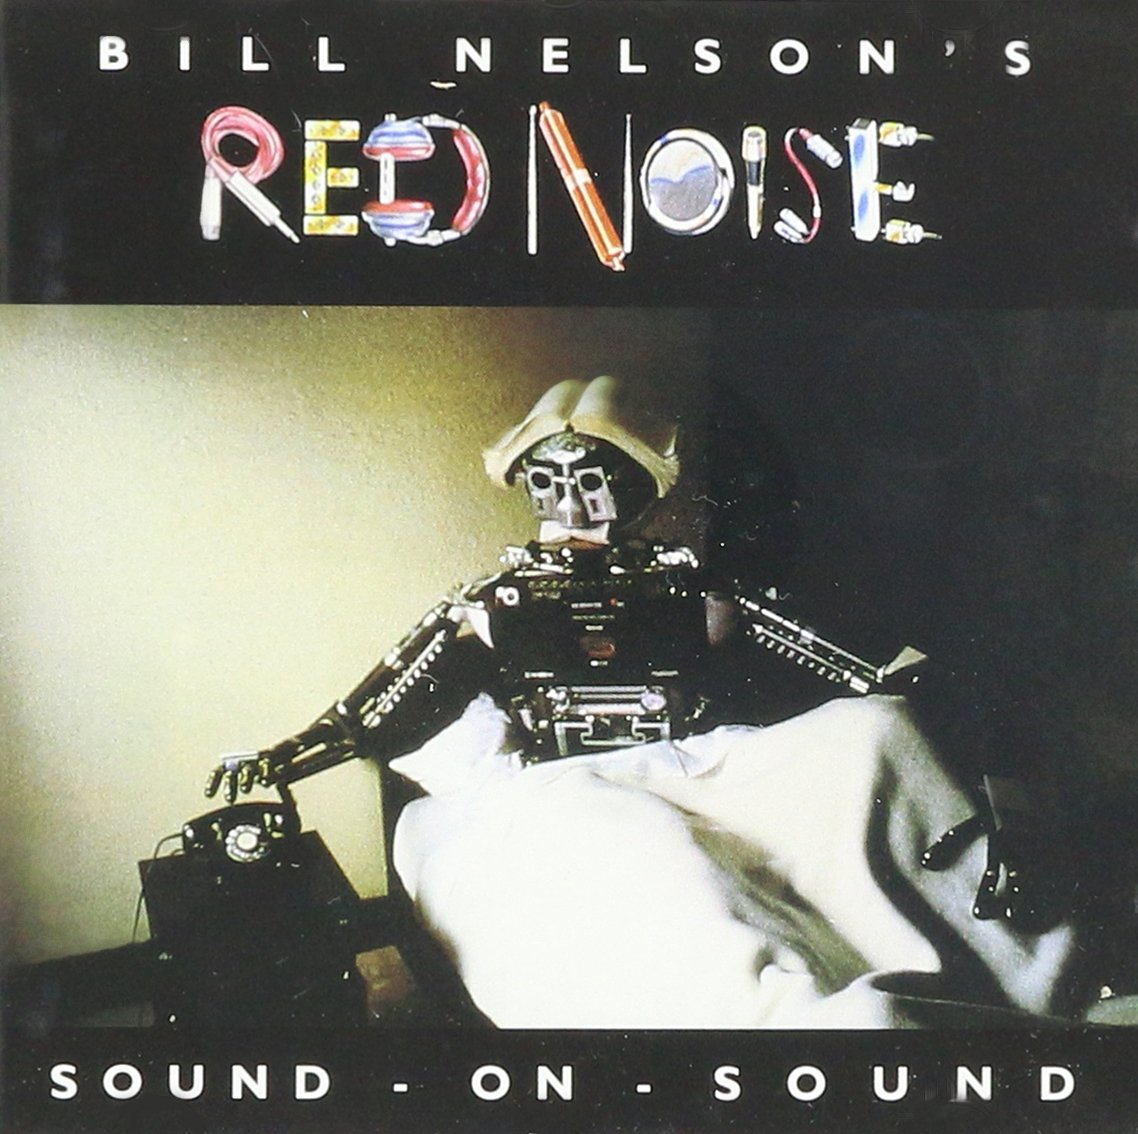 Bill Nelson, Red Noise - Sound on Sound - Amazon.com Music